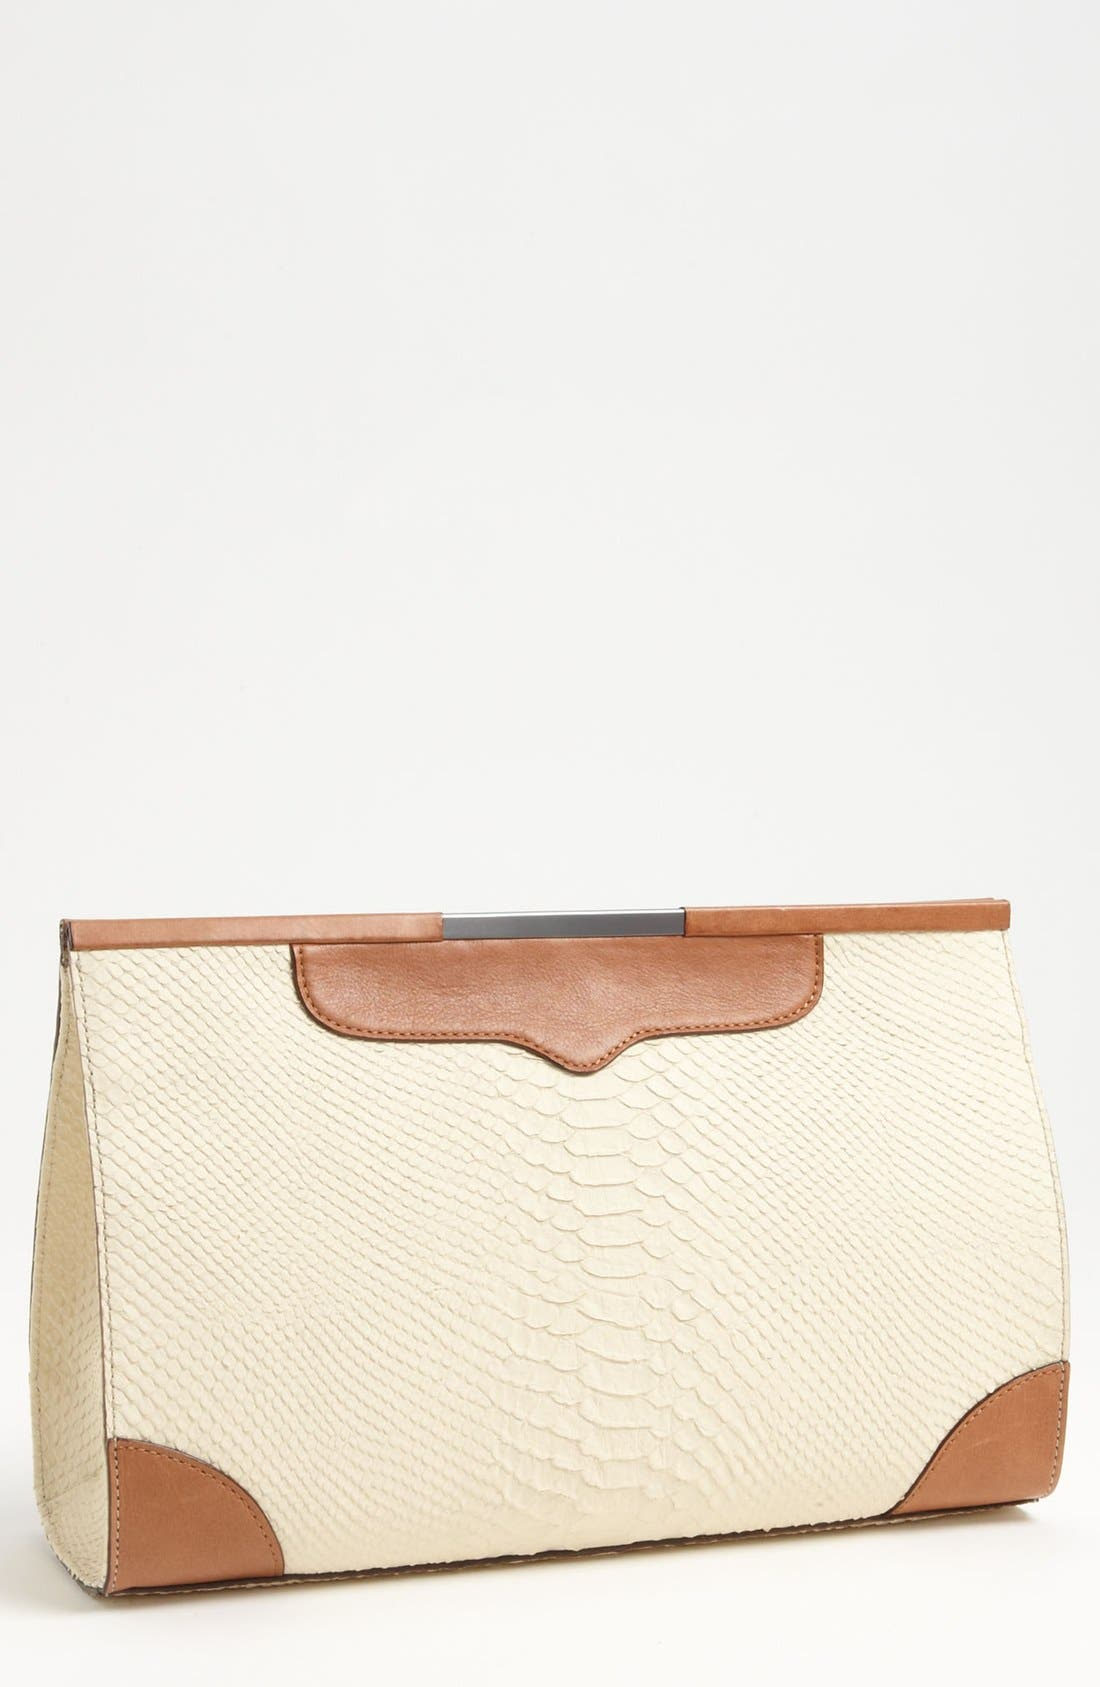 Main Image - Rebecca Minkoff 'Honey Bunch' Leather Clutch